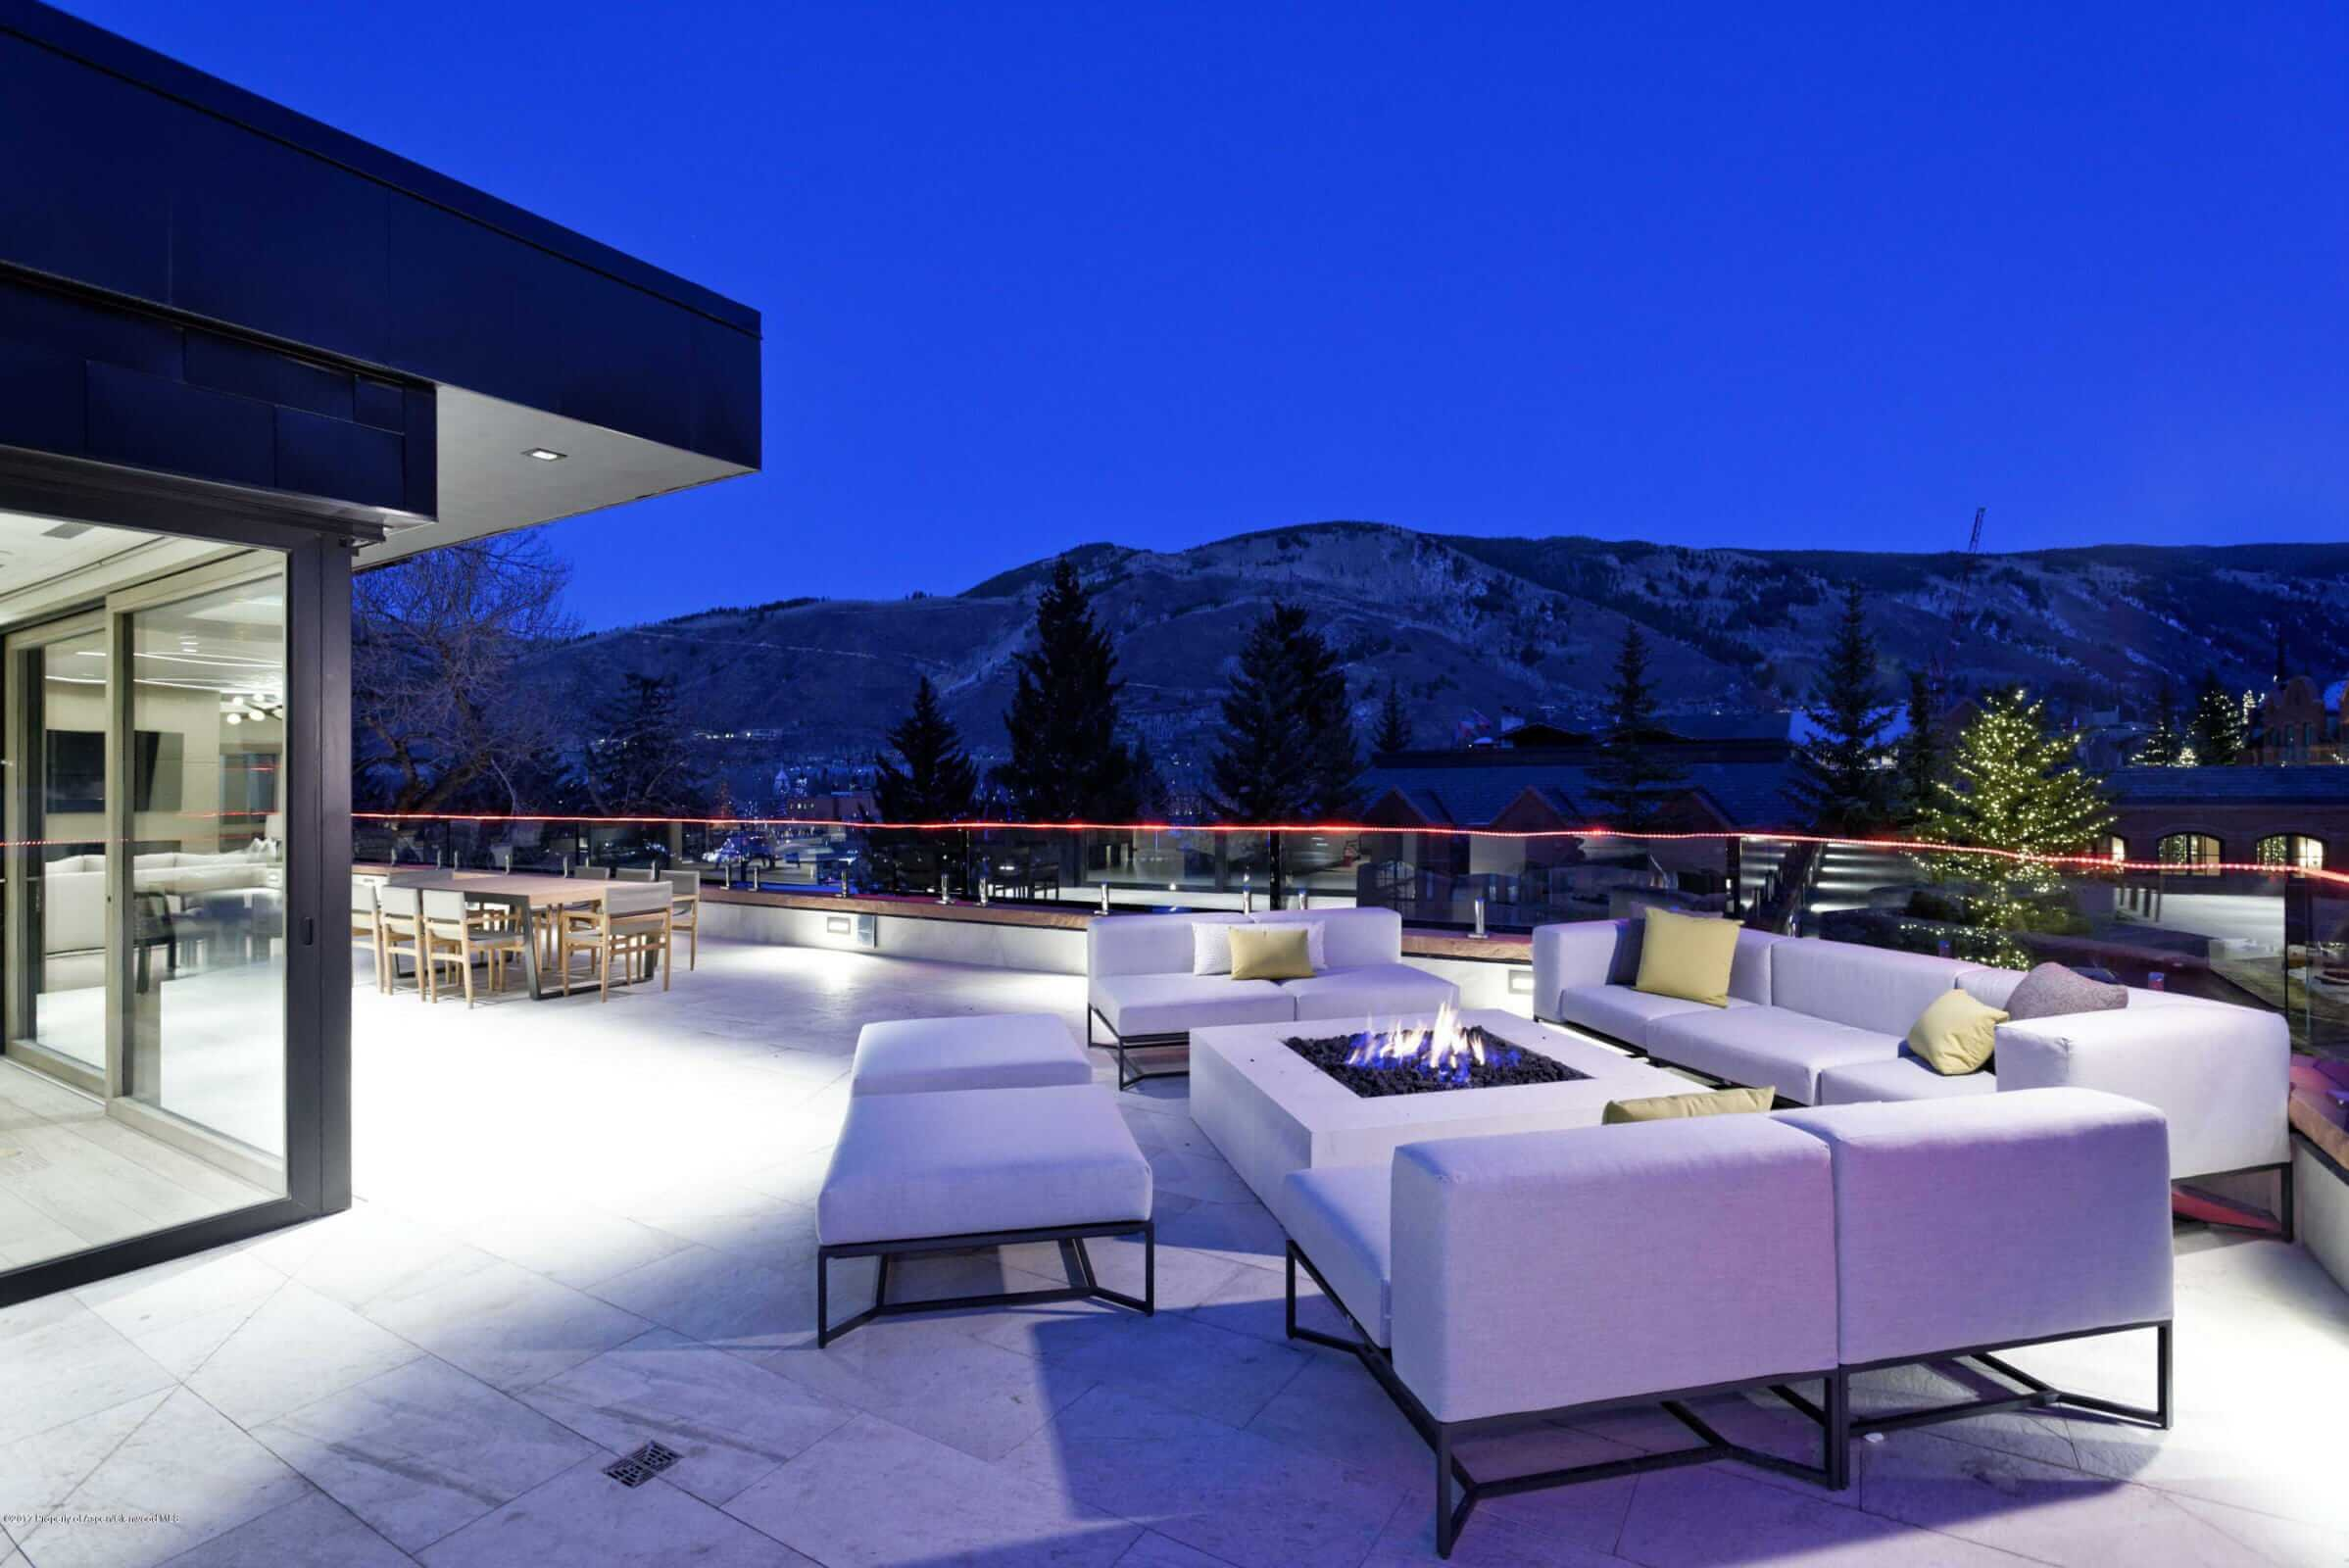 Competition in the $5,000-$10,000 Per Sq Ft Downtown Aspen Penthouse Market Gets Heated Image